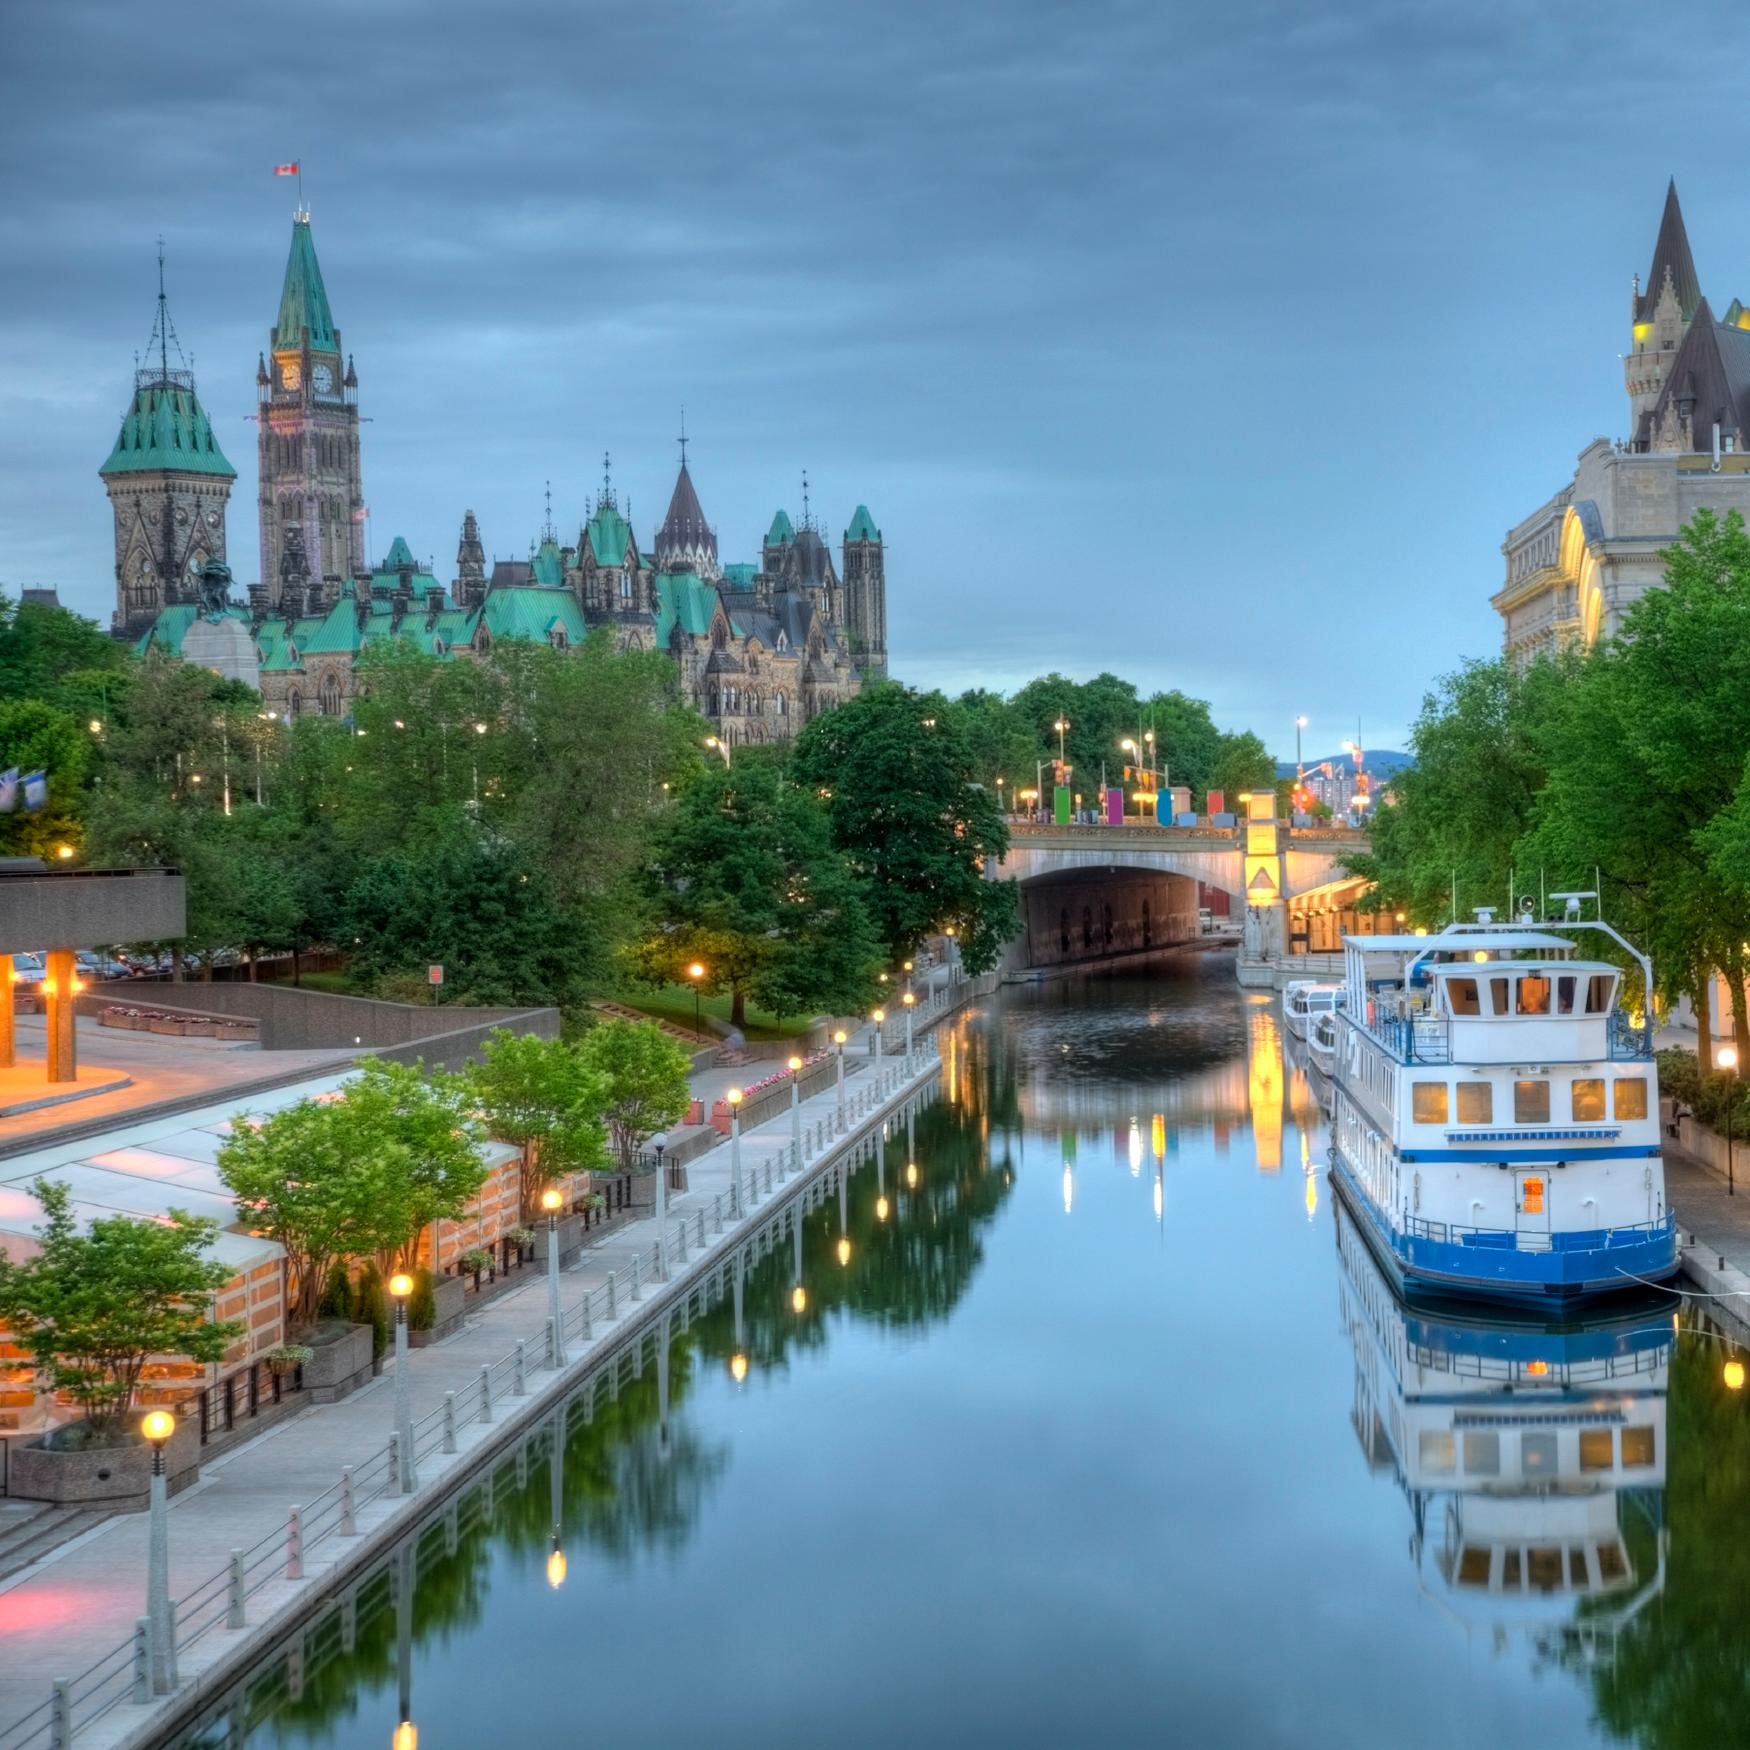 Hotels in Ontario - Search for hotels on KAYAK